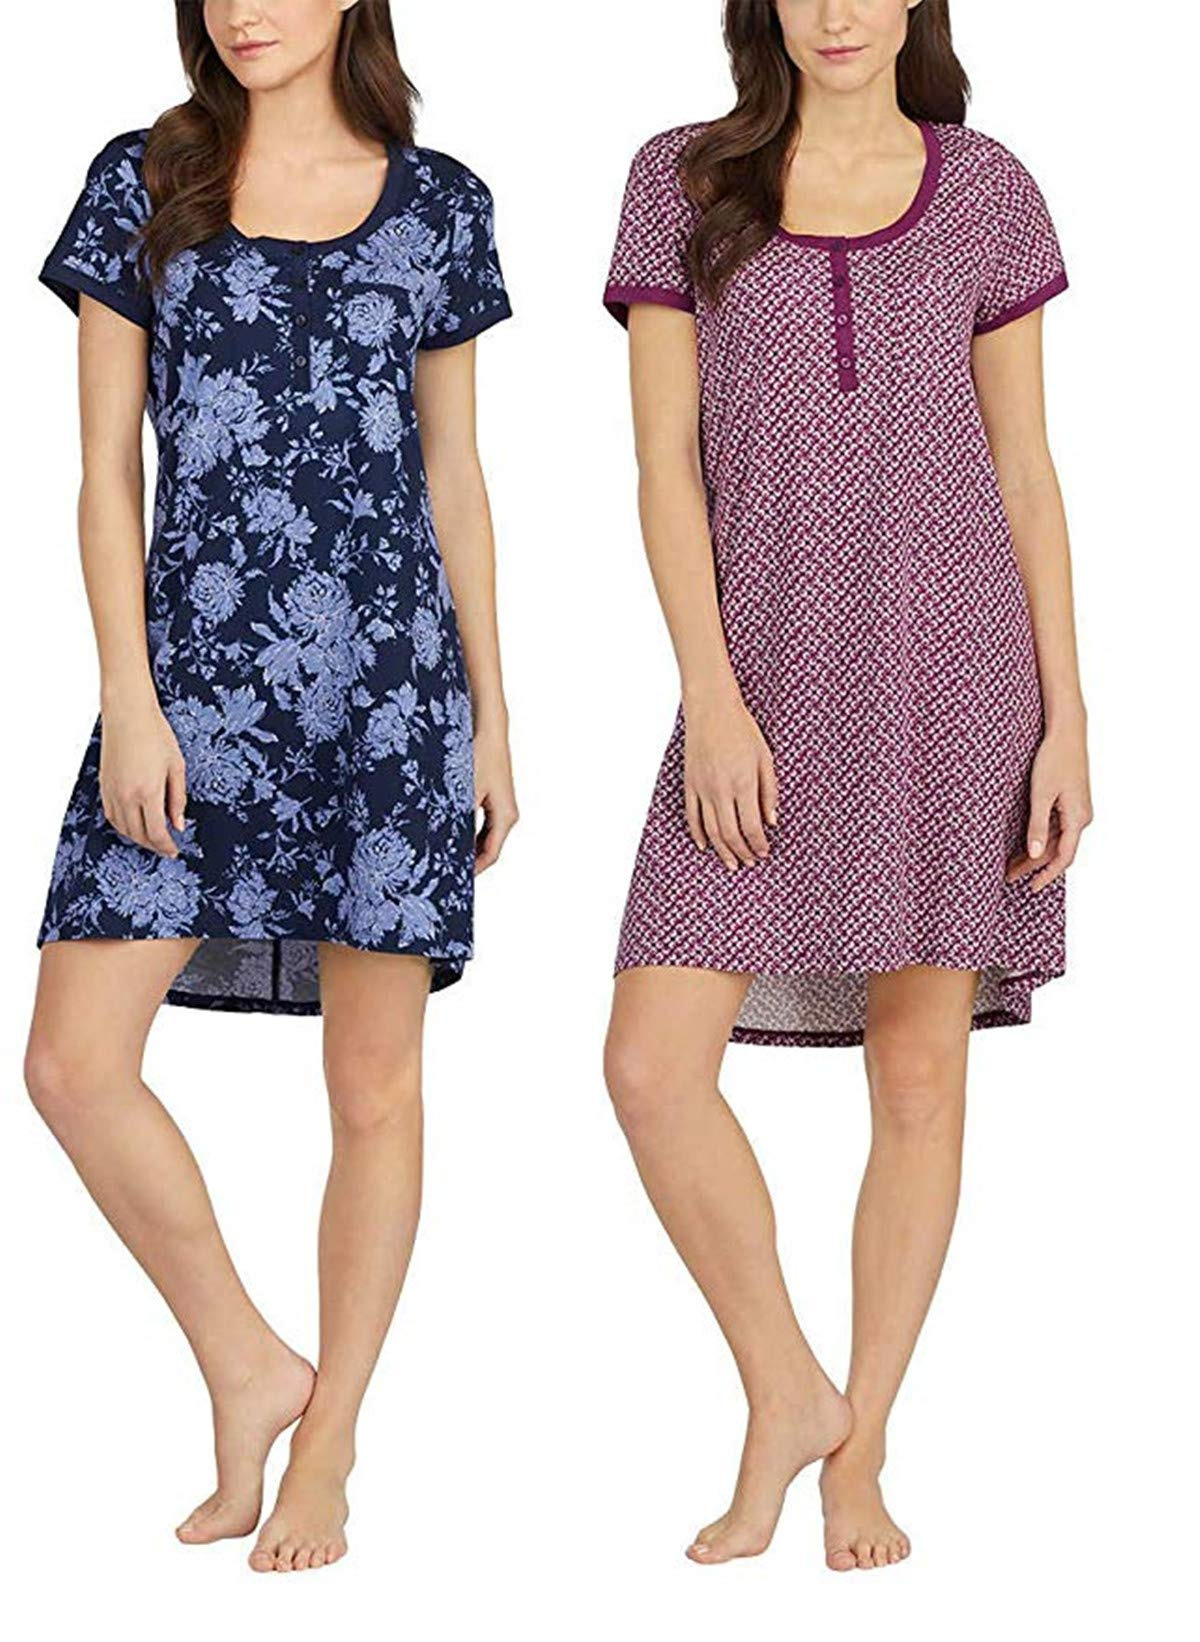 Lucky Brand Ladies' 2 Pack Sleep Shirts (XL, Blue Floral/Purple Coral)